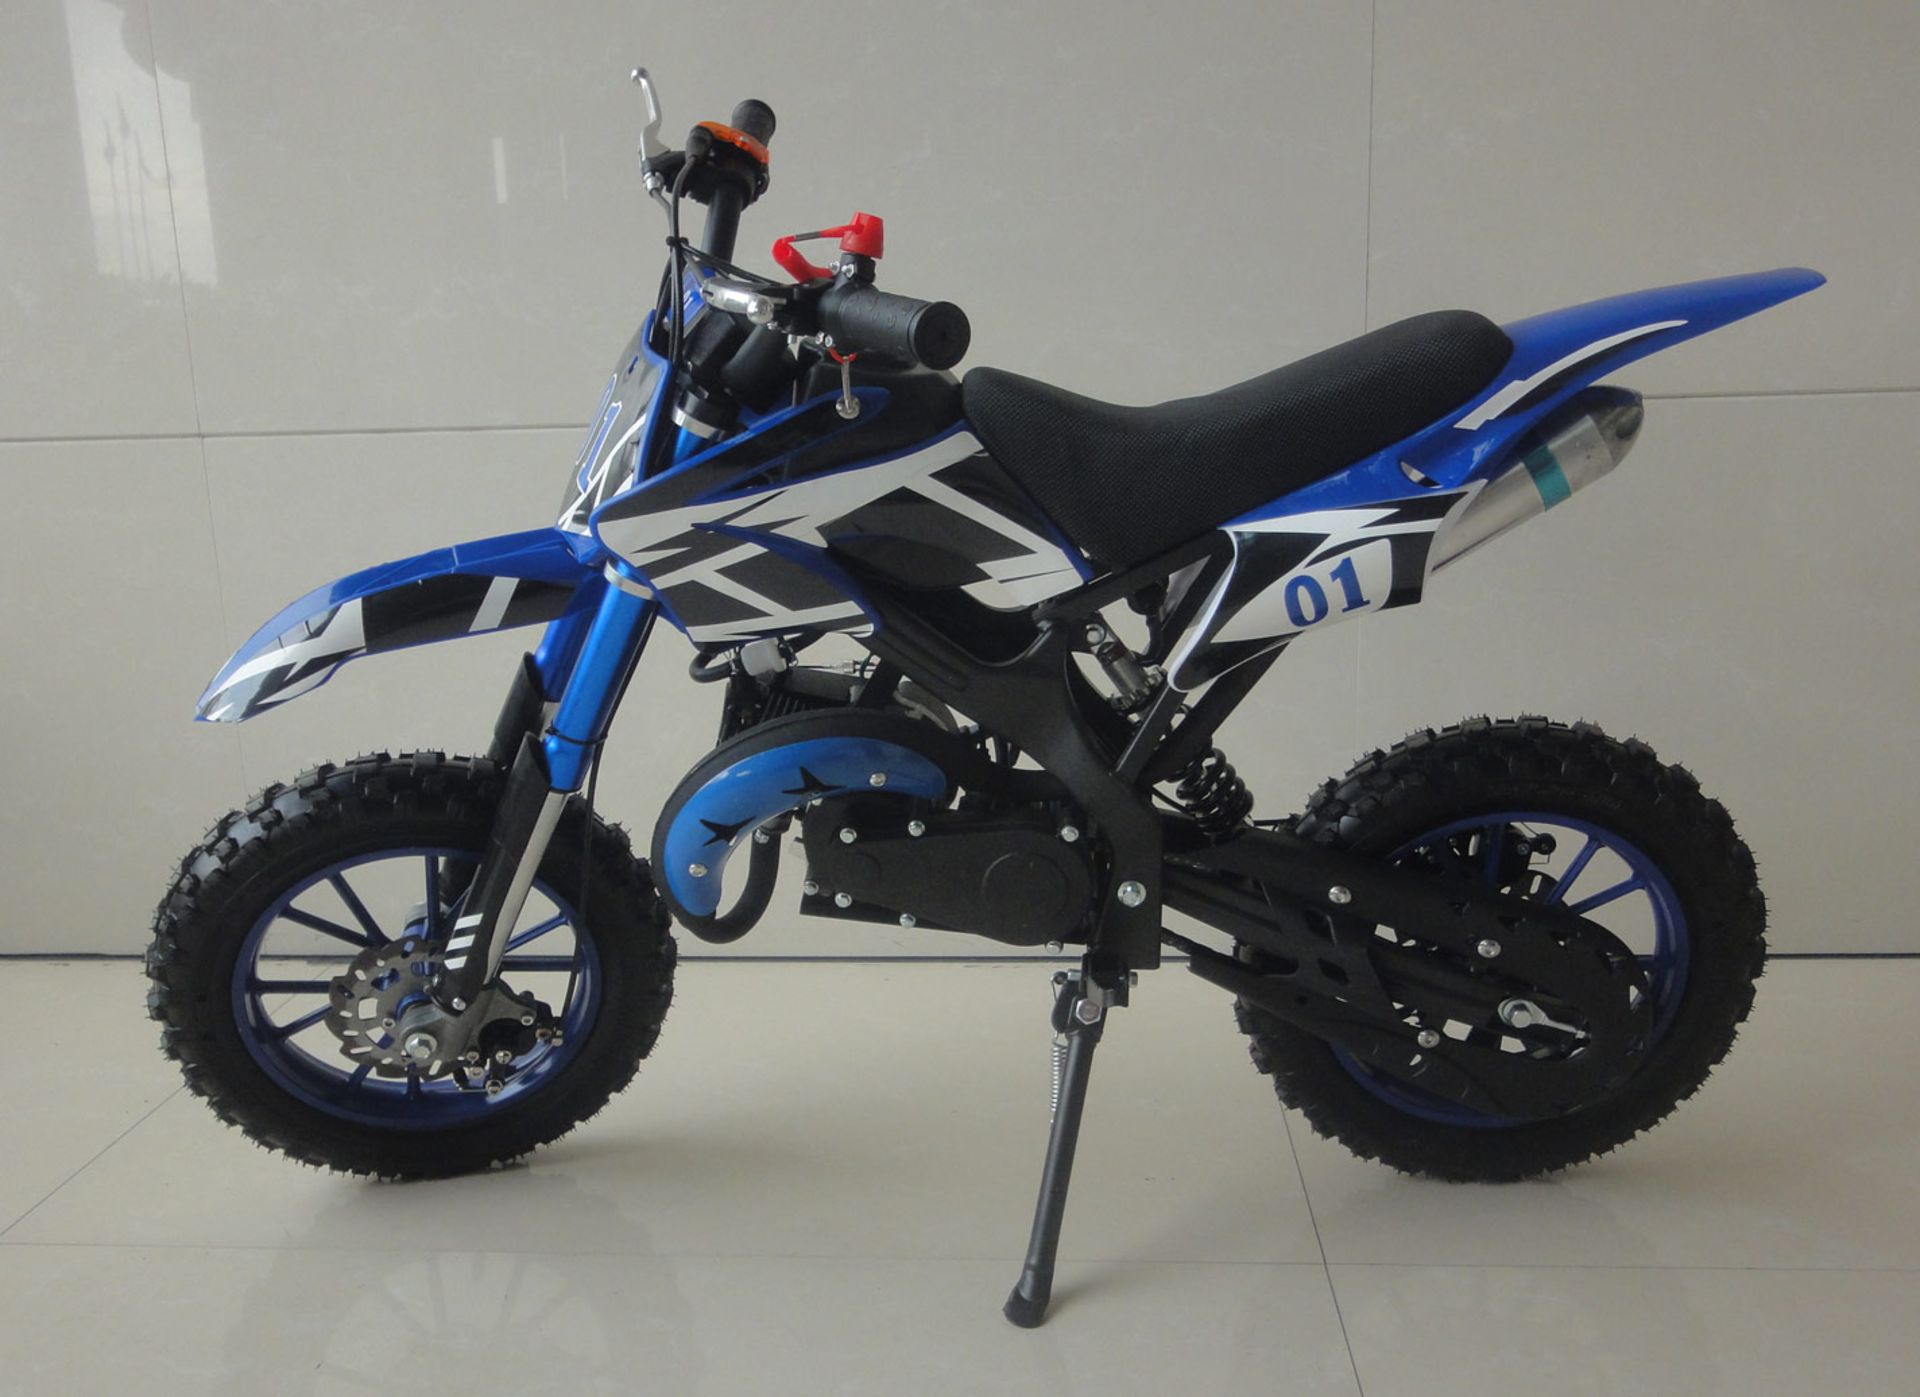 + VAT Brand New 49cc Falcon Mini Dirt Bike - Full Front & Rear Suspension - Disc Brakes - Easy Pull - Image 3 of 6